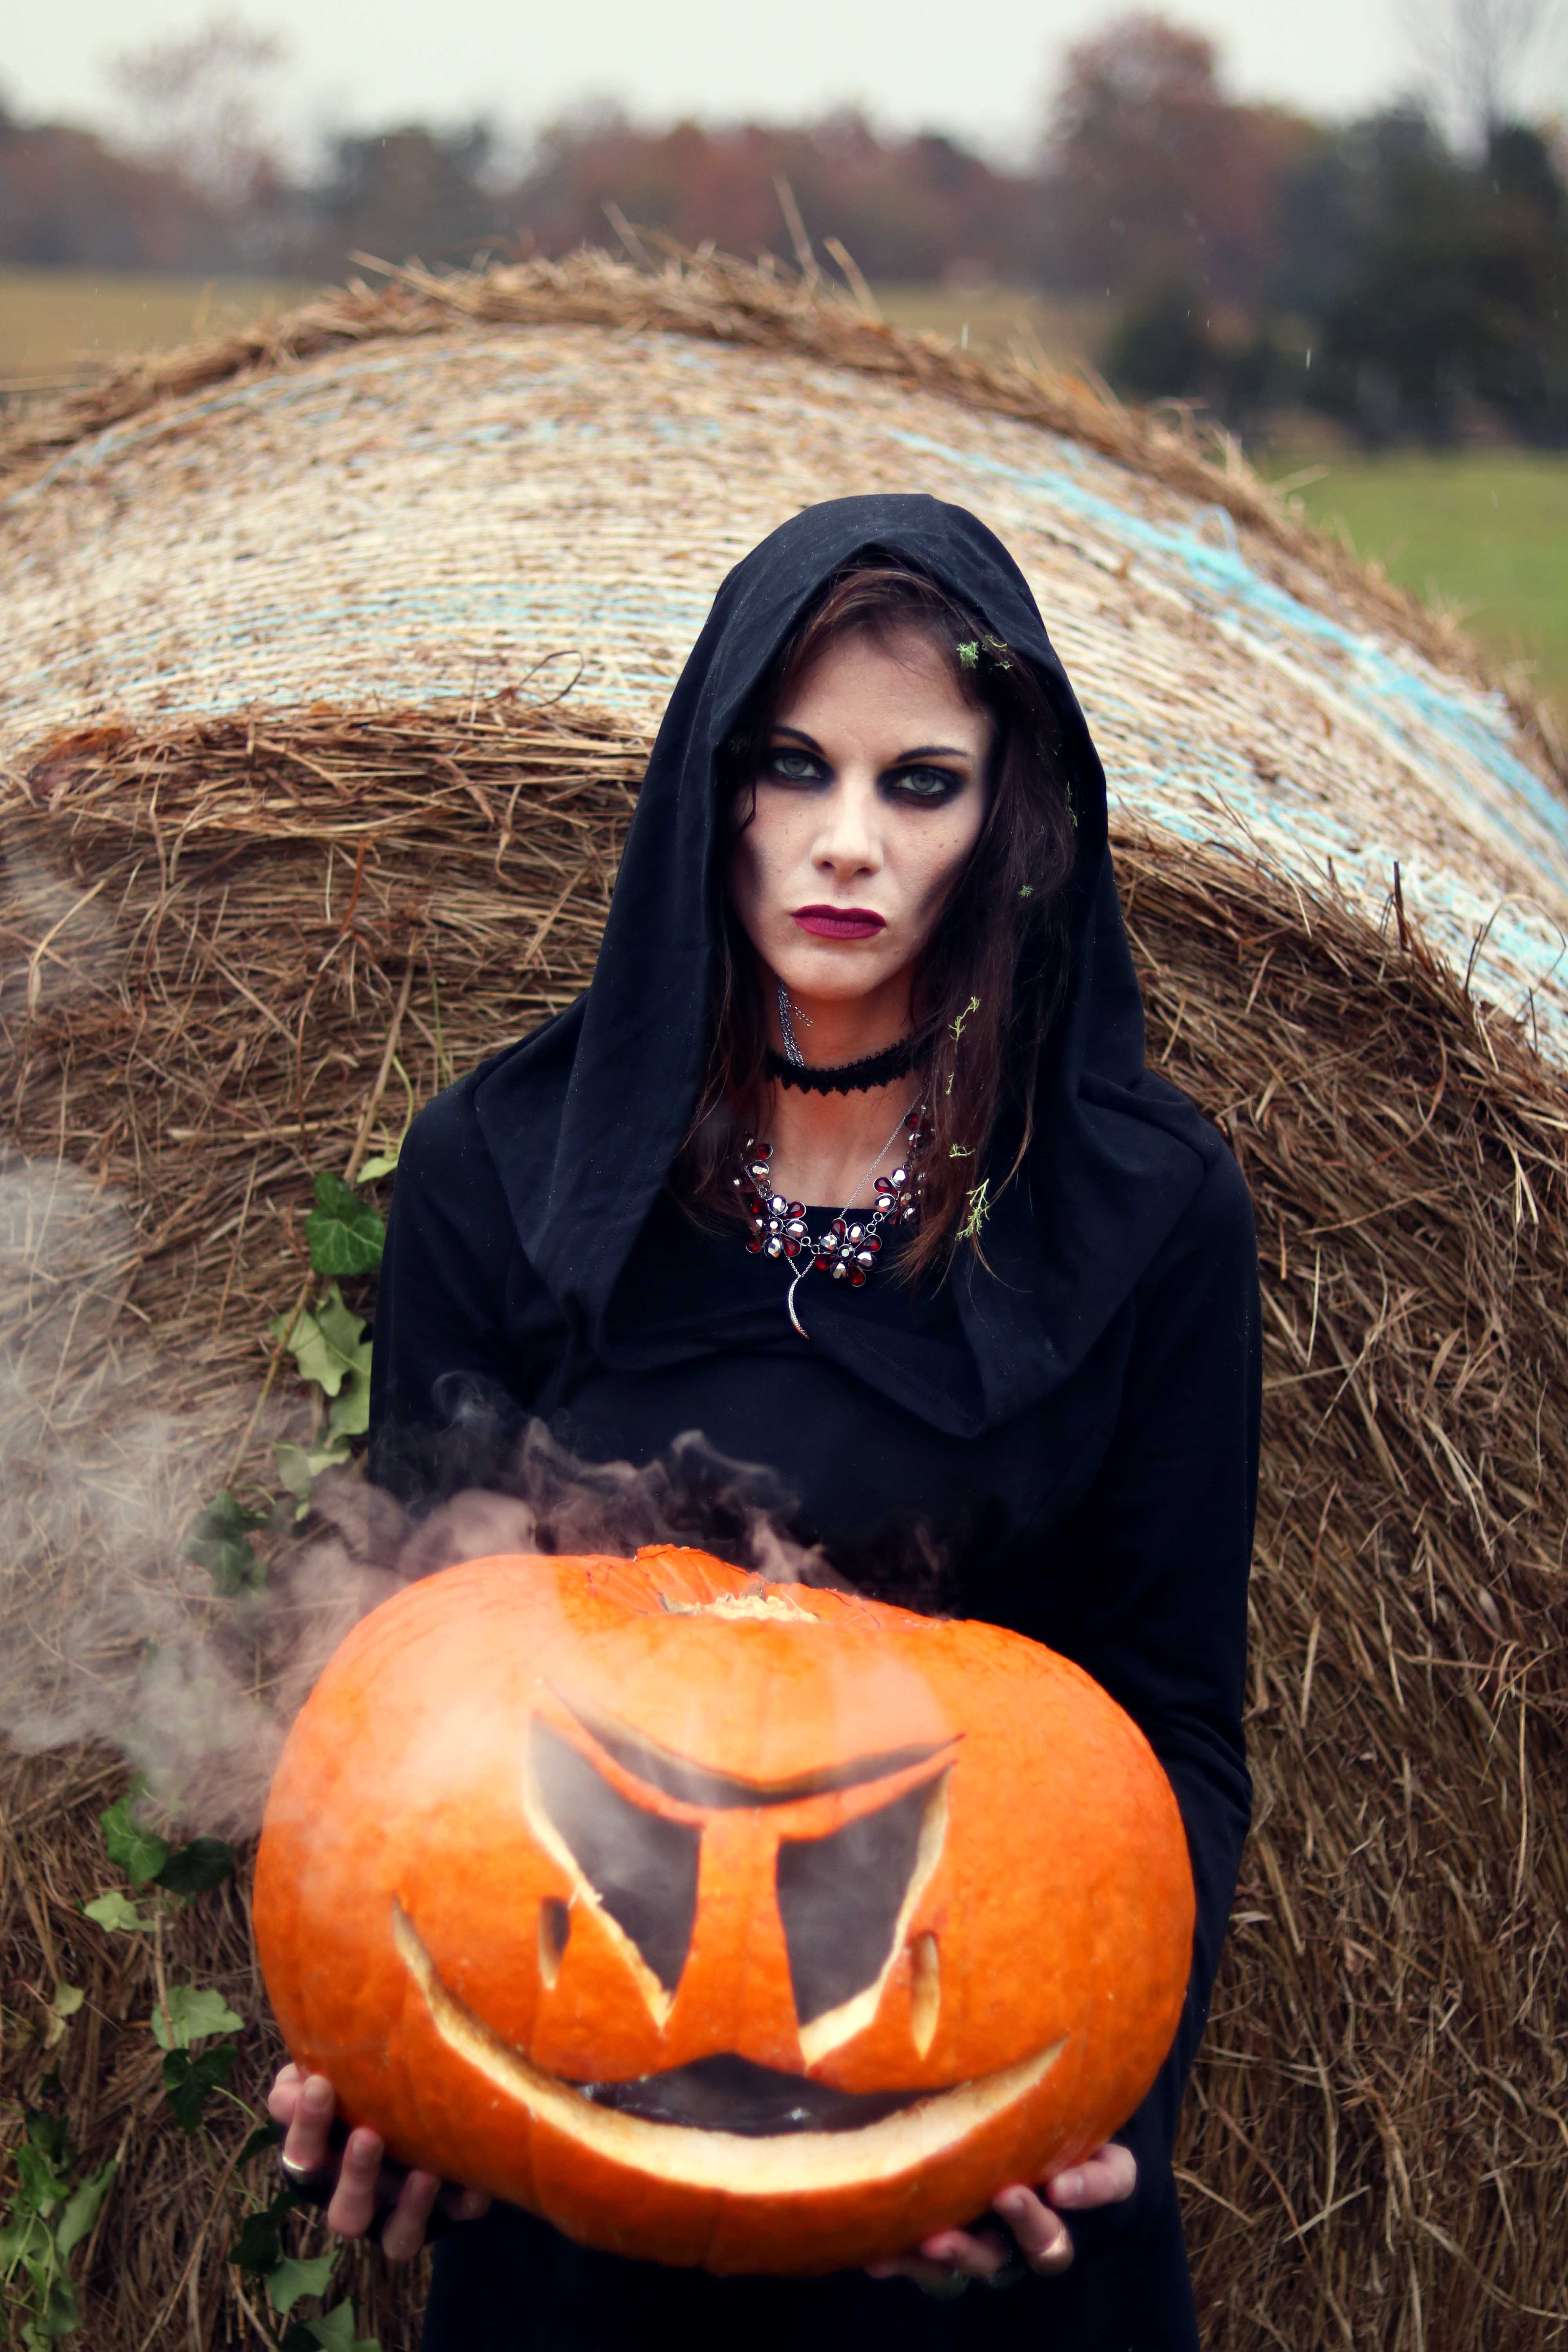 From seances to slumber parties for grown ups, here's 10 creative ways to celebrate Samhain.